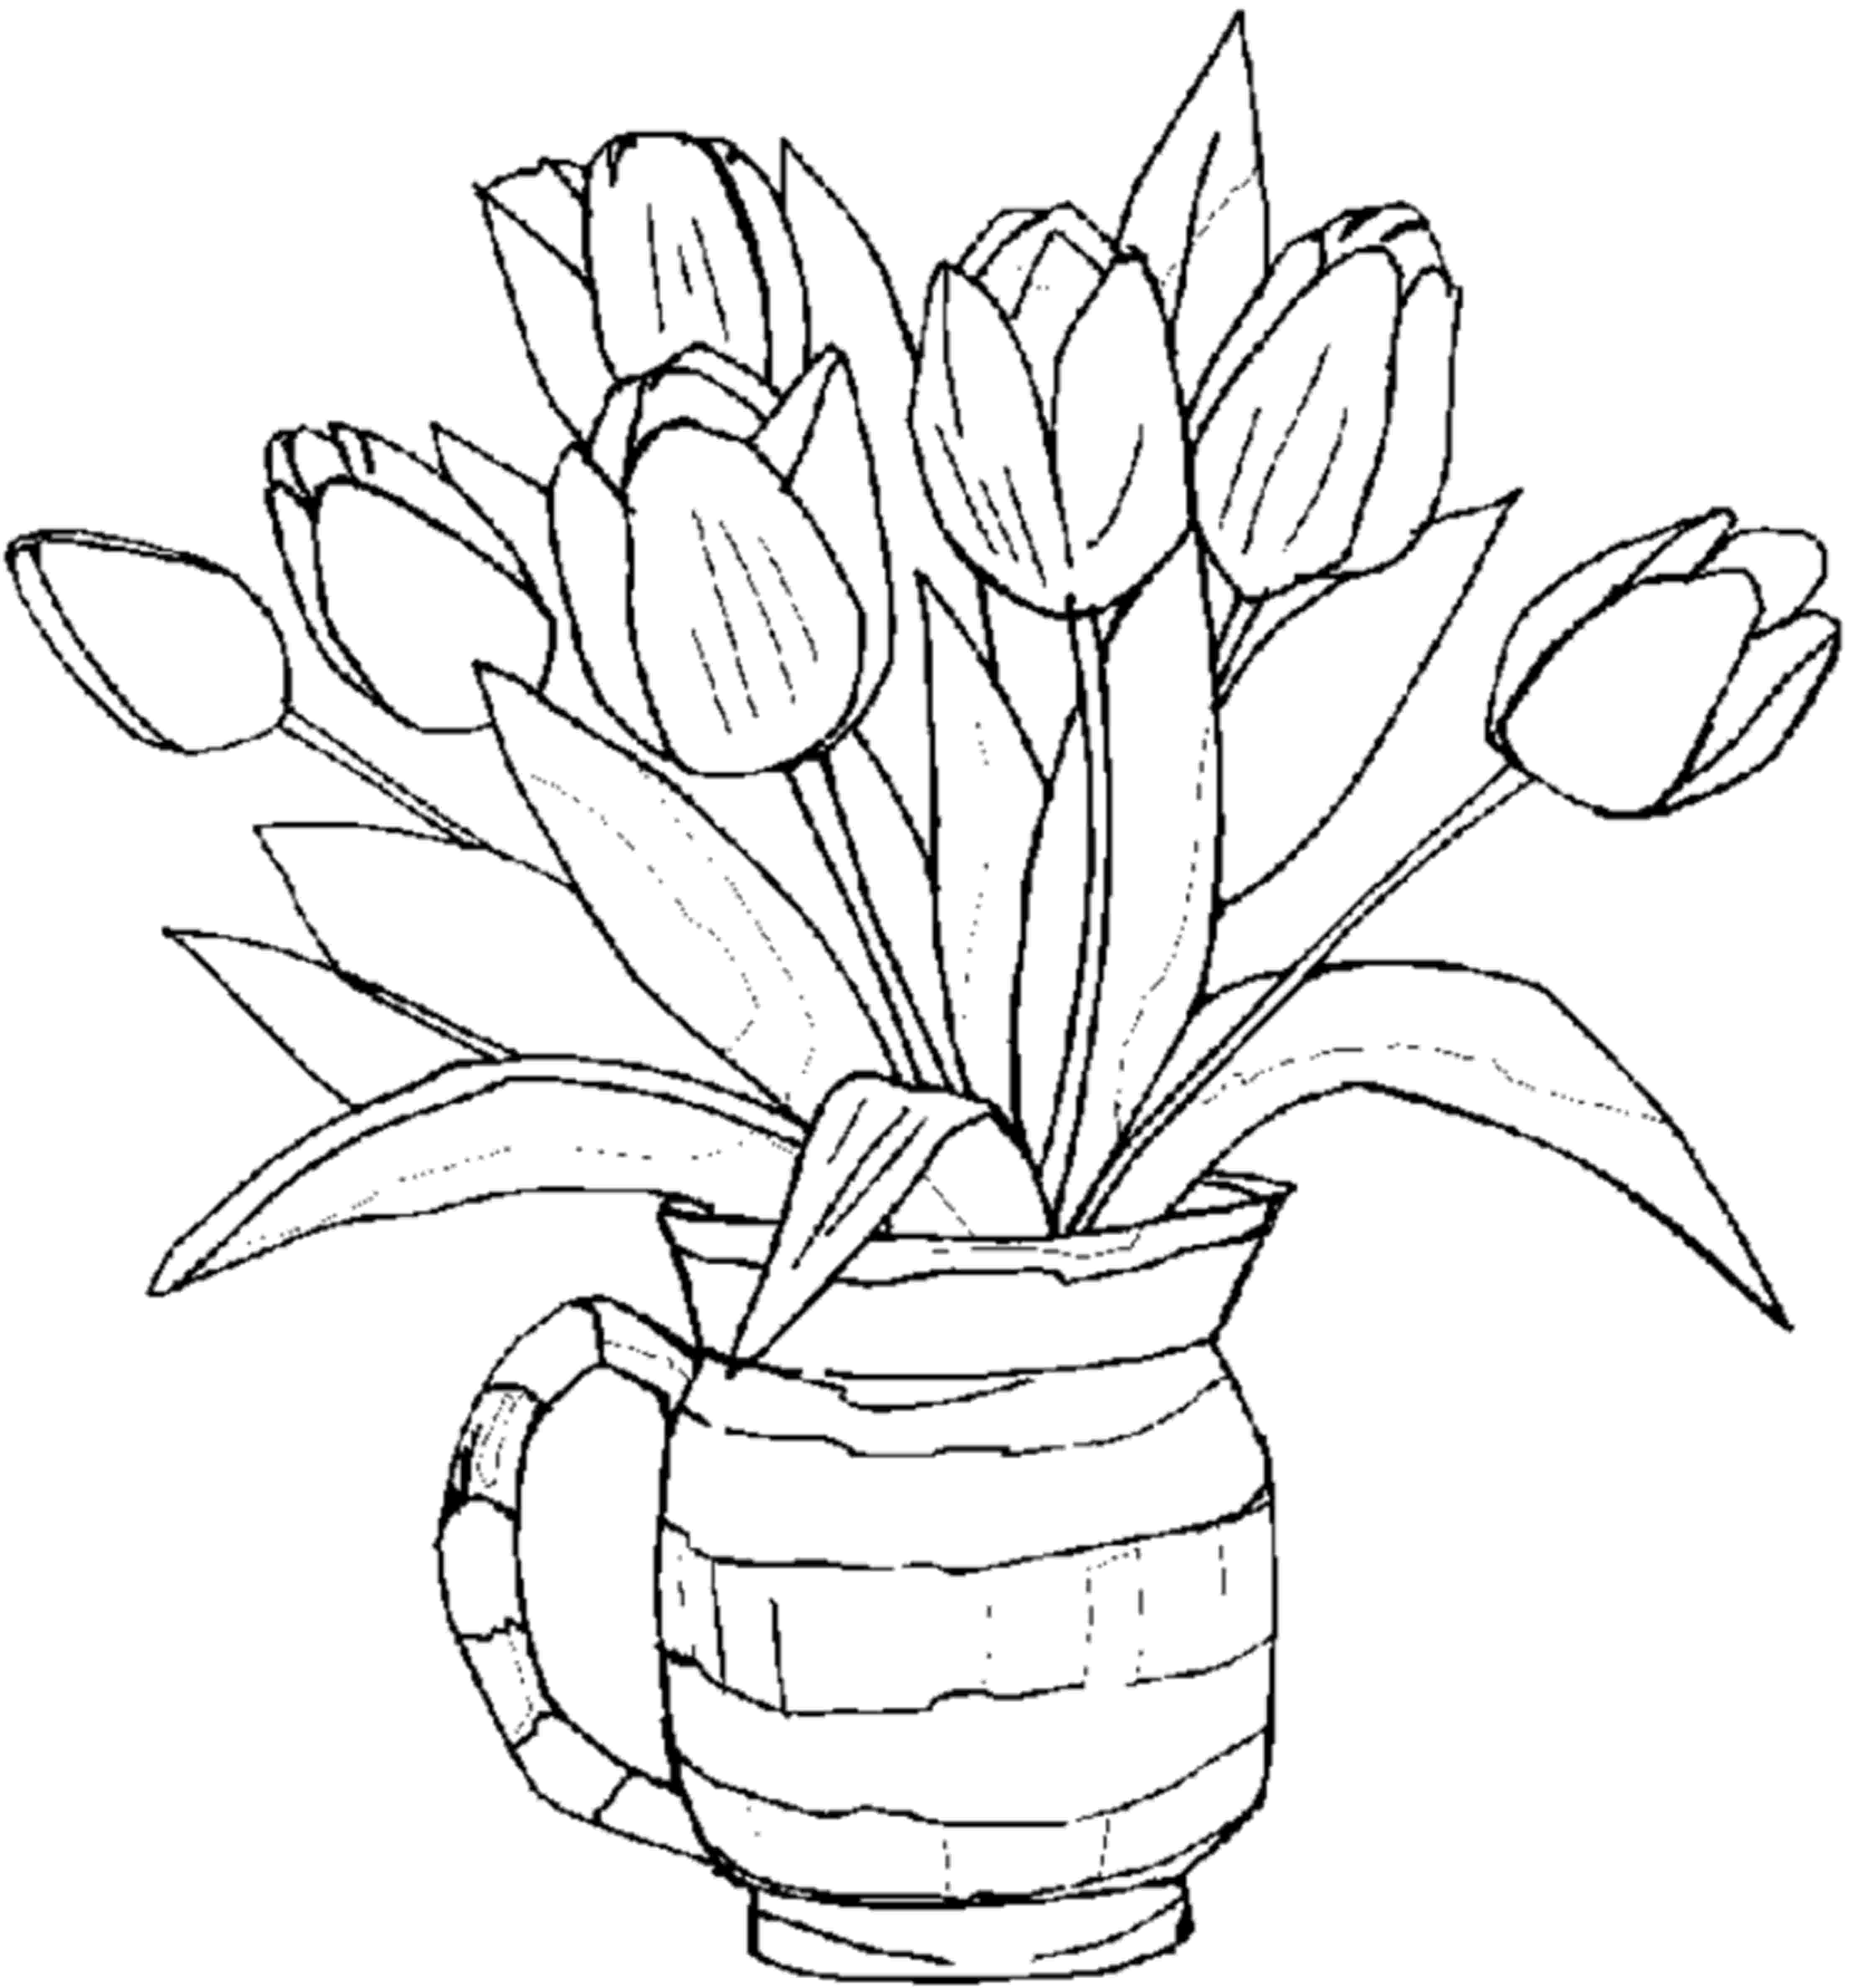 color pictures of flowers free printable flower coloring pages for kids best pictures color of flowers 1 1